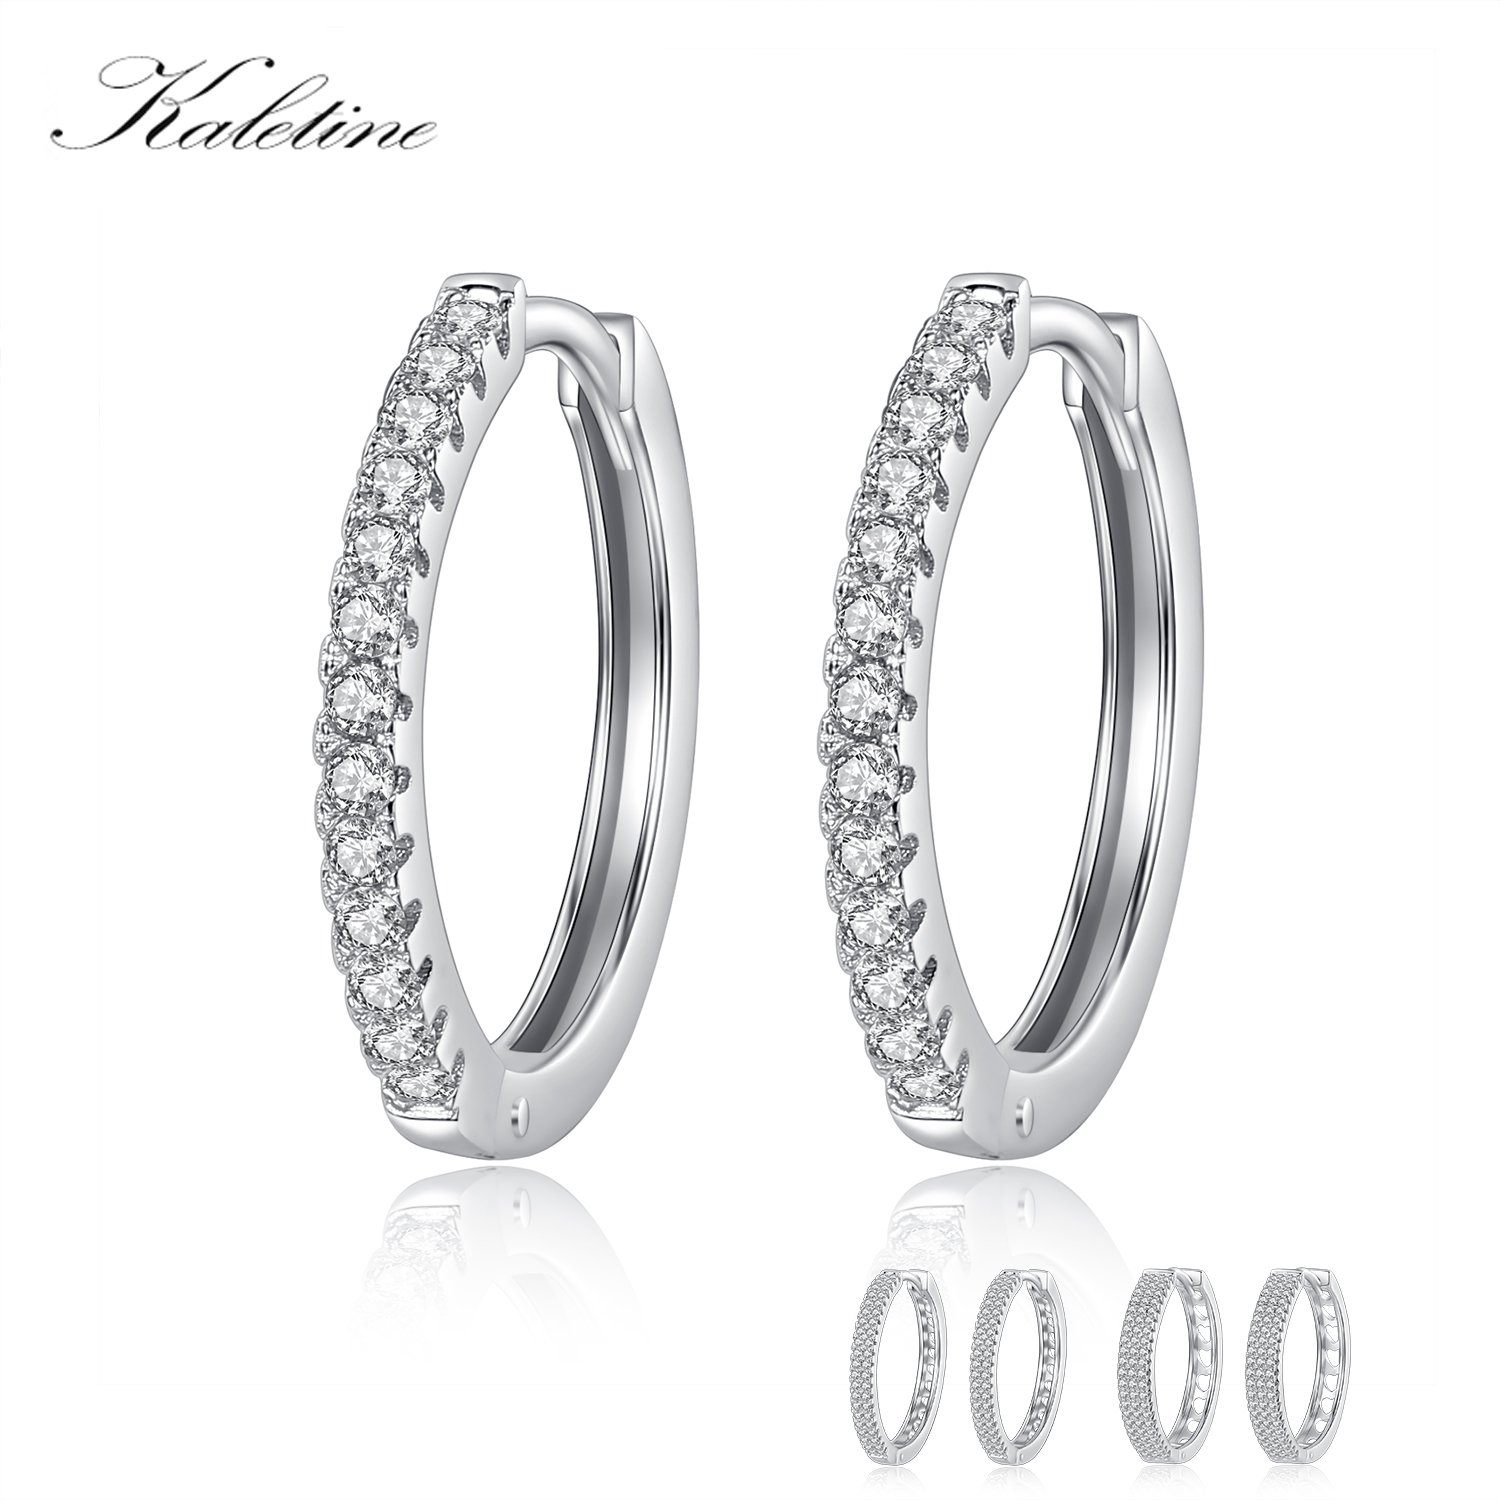 82051a203 Detail Feedback Questions about KALETINE Real 925 Sterling Silver Big Hoops  Earrings Fashion Jewelry Wedding 2018 CZ Huggie White Gold Earrings For  Women 6 ...